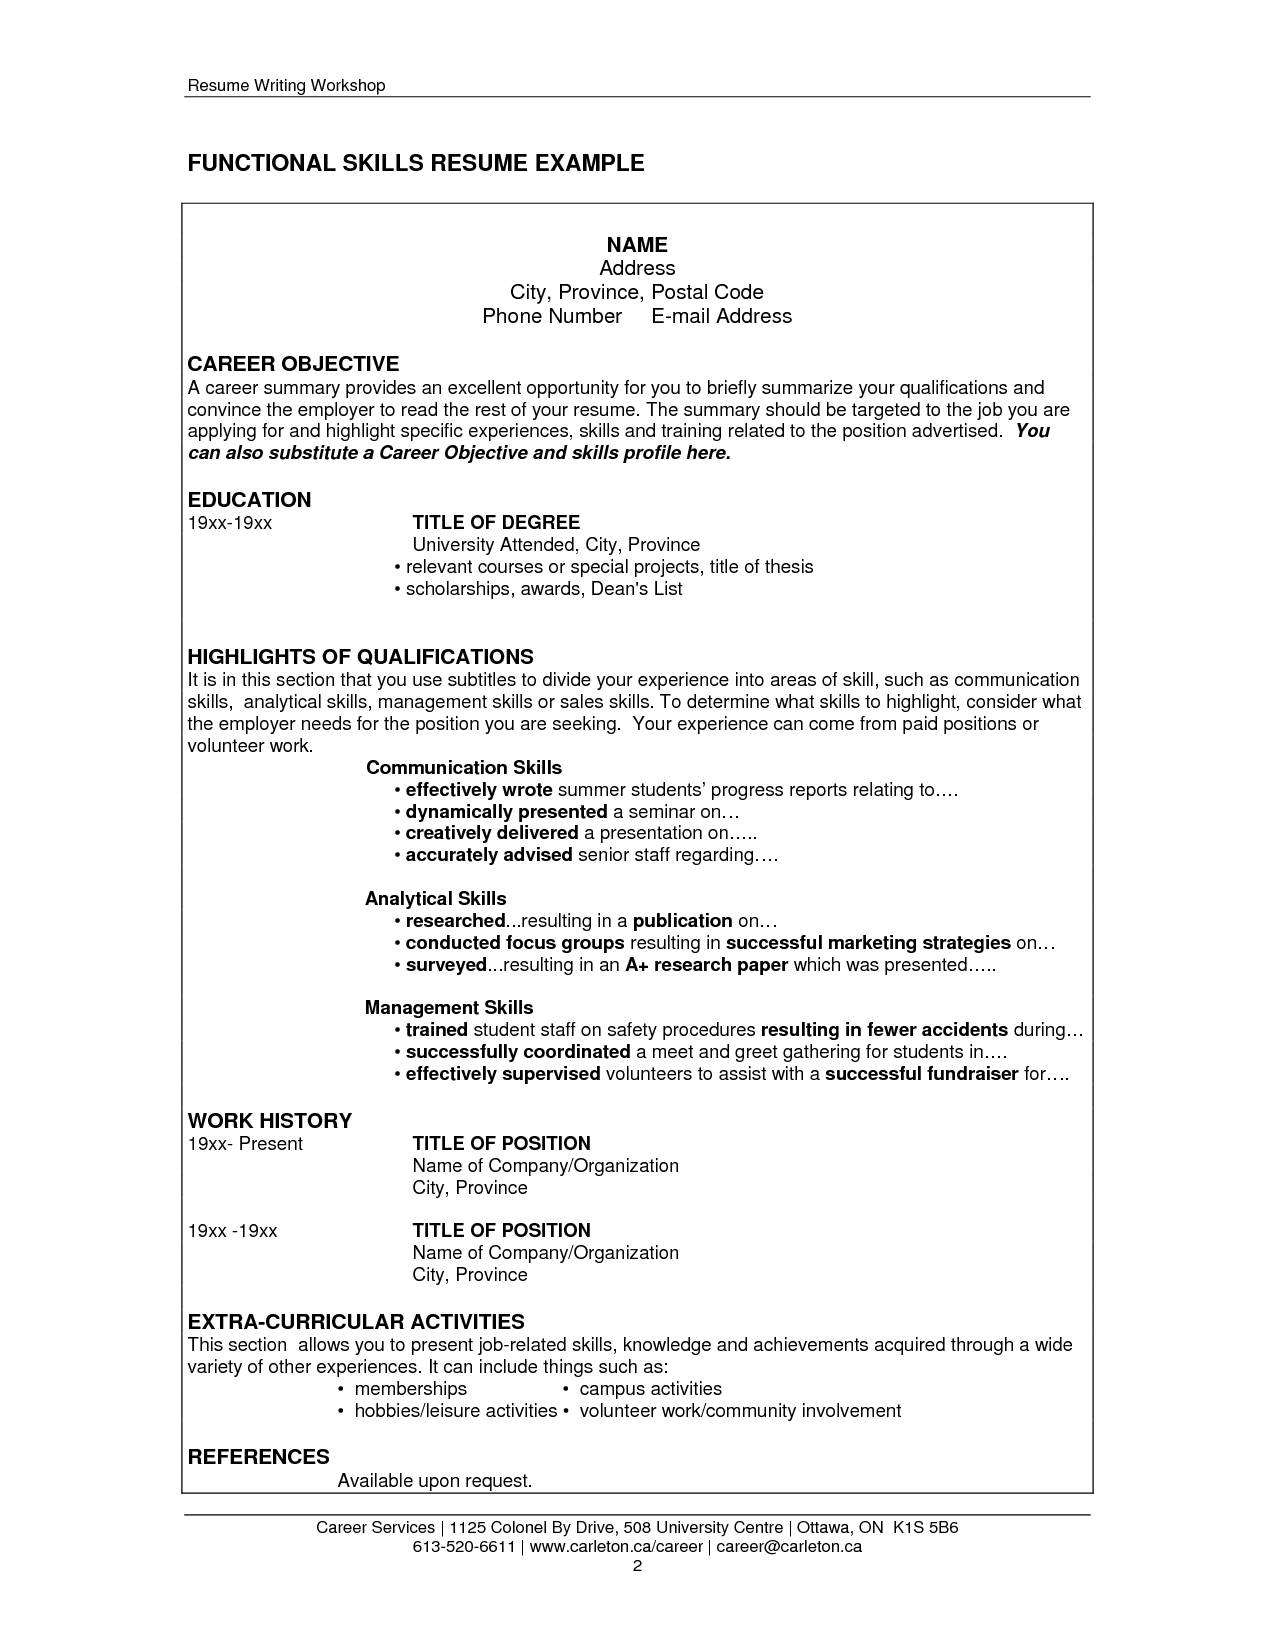 Example Of Professional Resume Job Resume Communication Skills  Httpwwwresumecareerjob